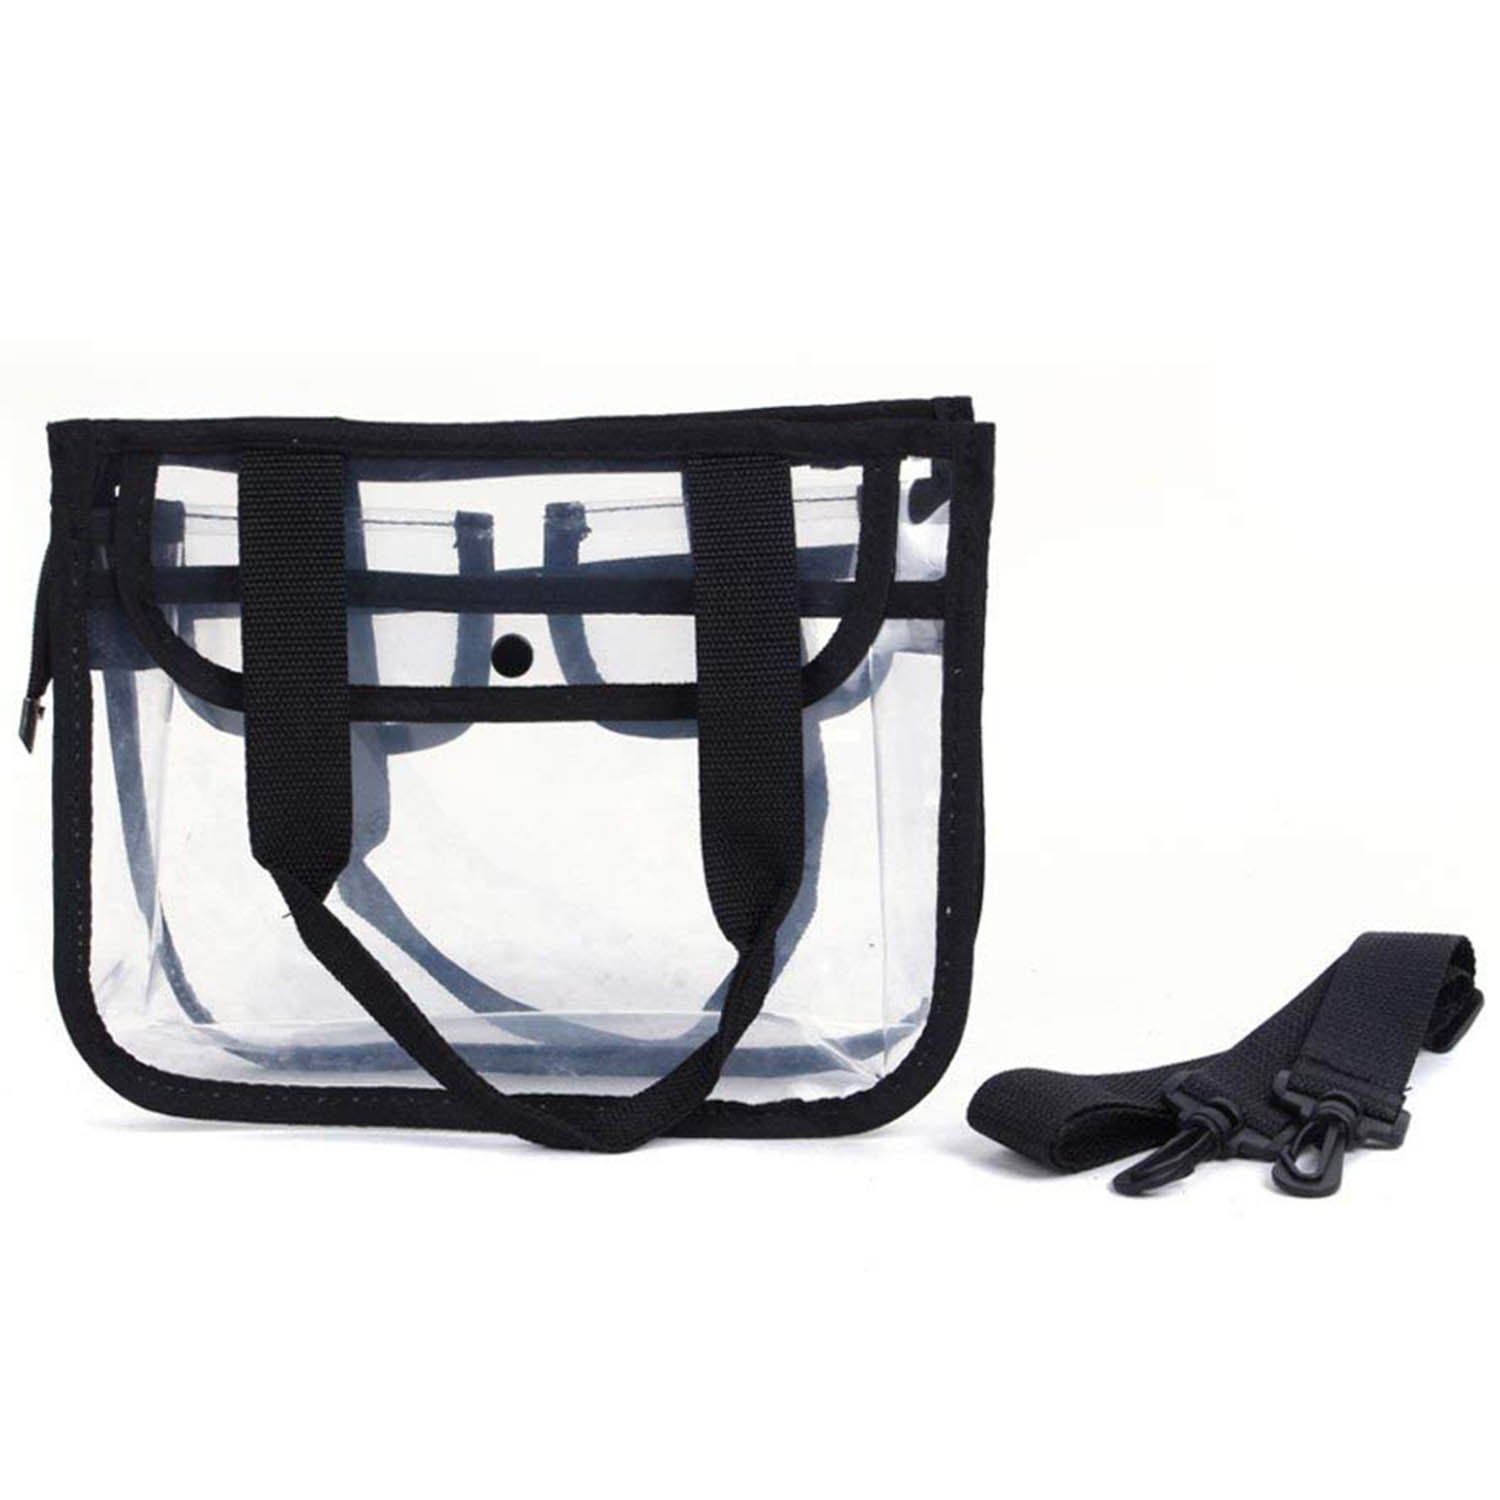 CoreLife Clear Stadium Tote Bag for Women Zippered Travel Bag with Strap NFL PGA Approved